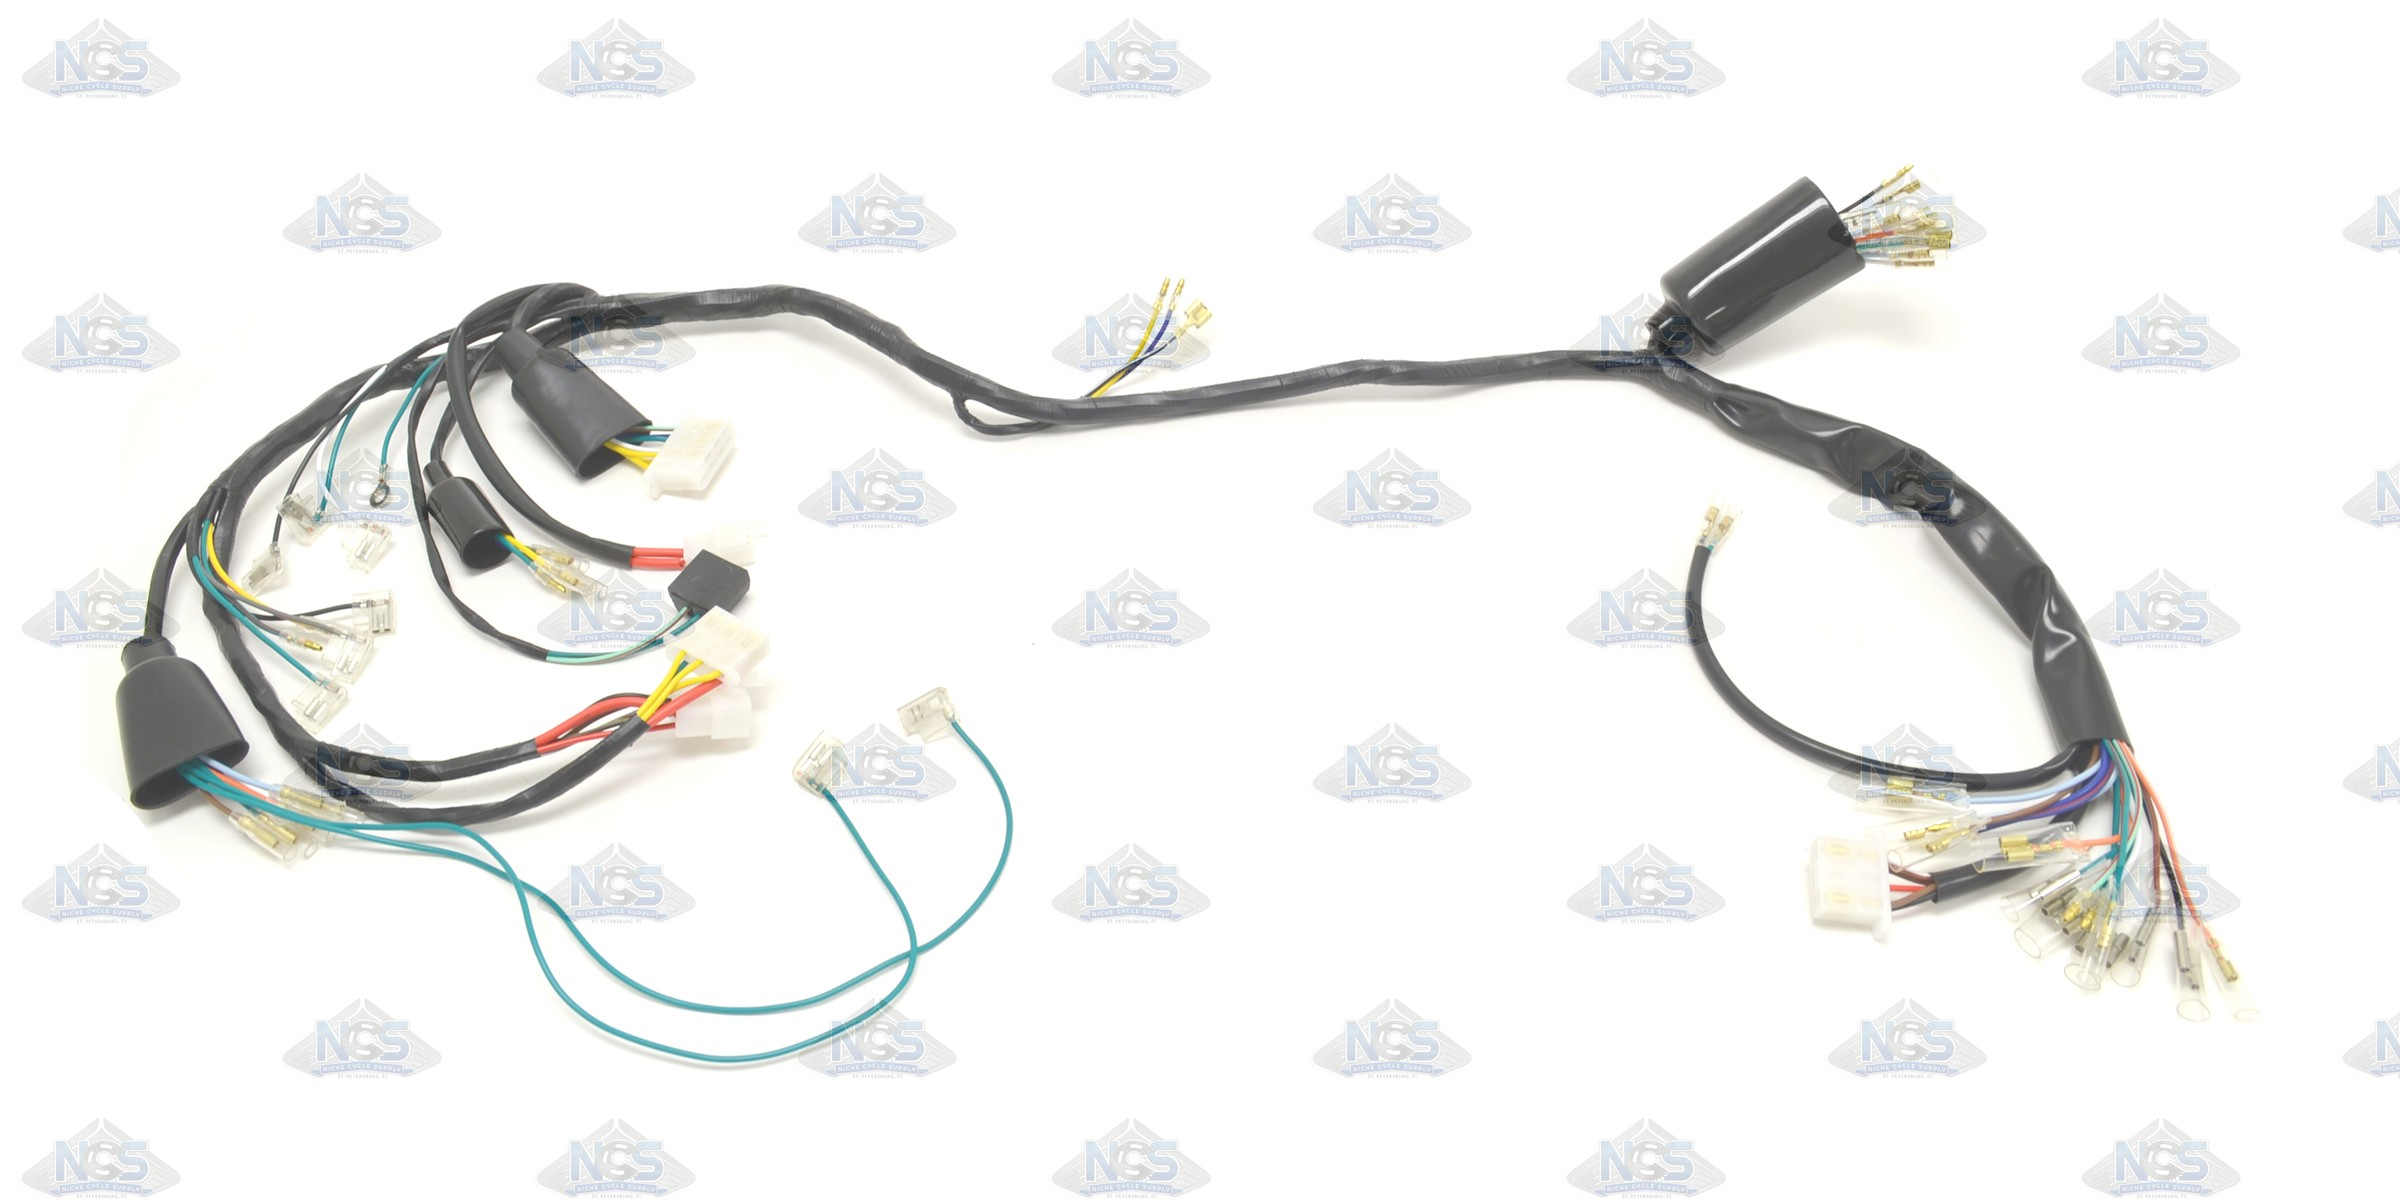 honda cb400f 75 77 complete wire harness 9b8 honda cb400f 75 77 complete wire harness  at reclaimingppi.co